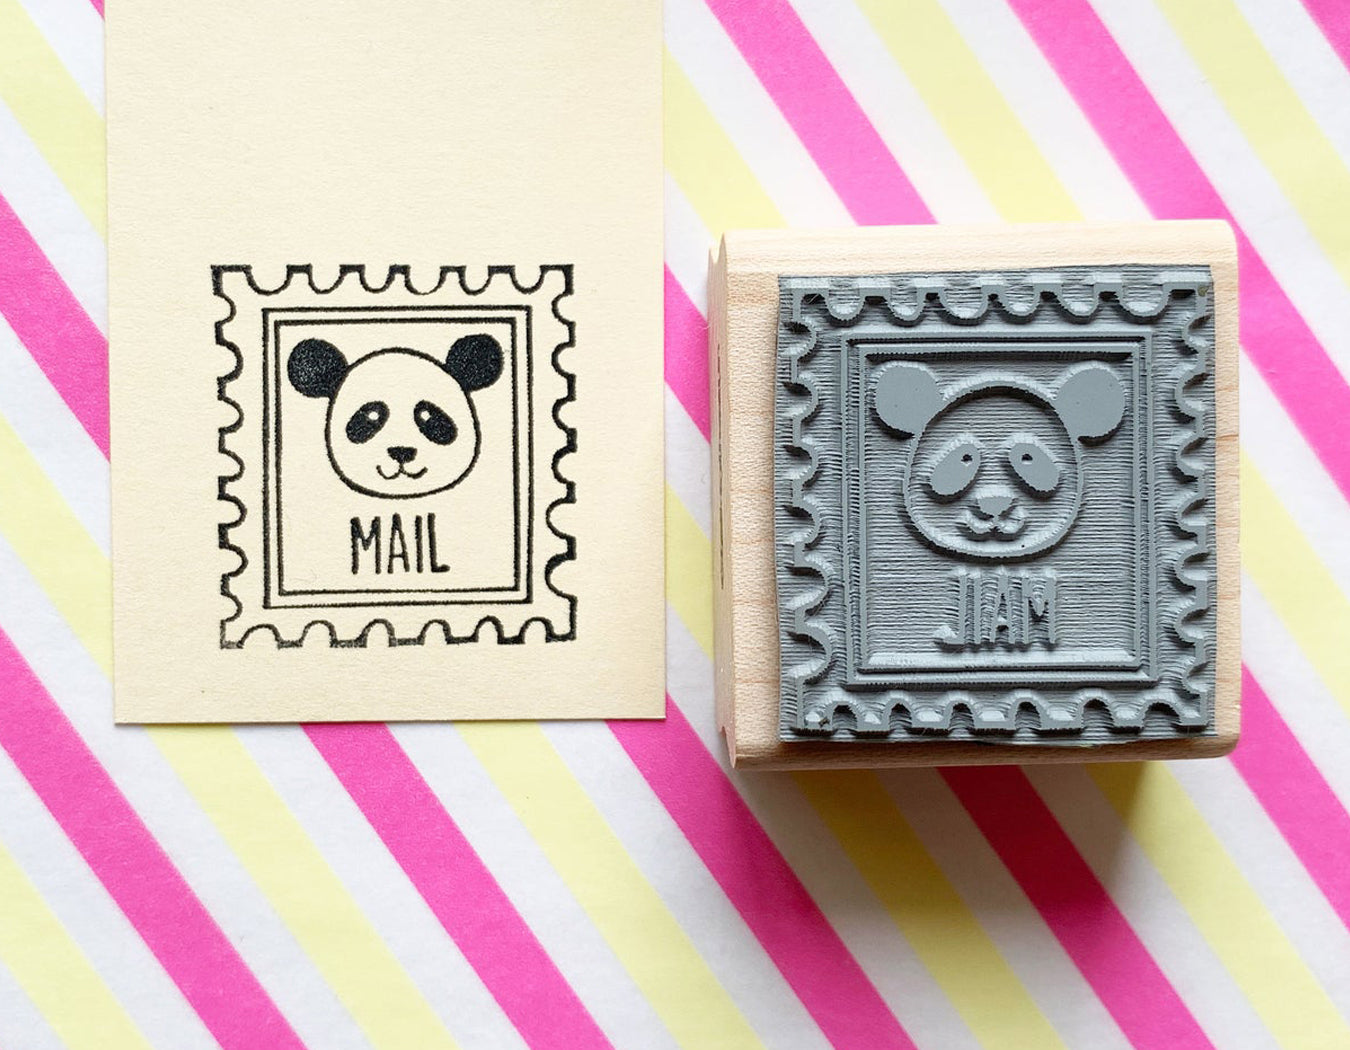 panda rubber stamp | postage stamp | panda mail stamp | woodland animal stamp for snail mail, card making, gift wrapping | LIMITED EDITION- TALK TO THE SUN